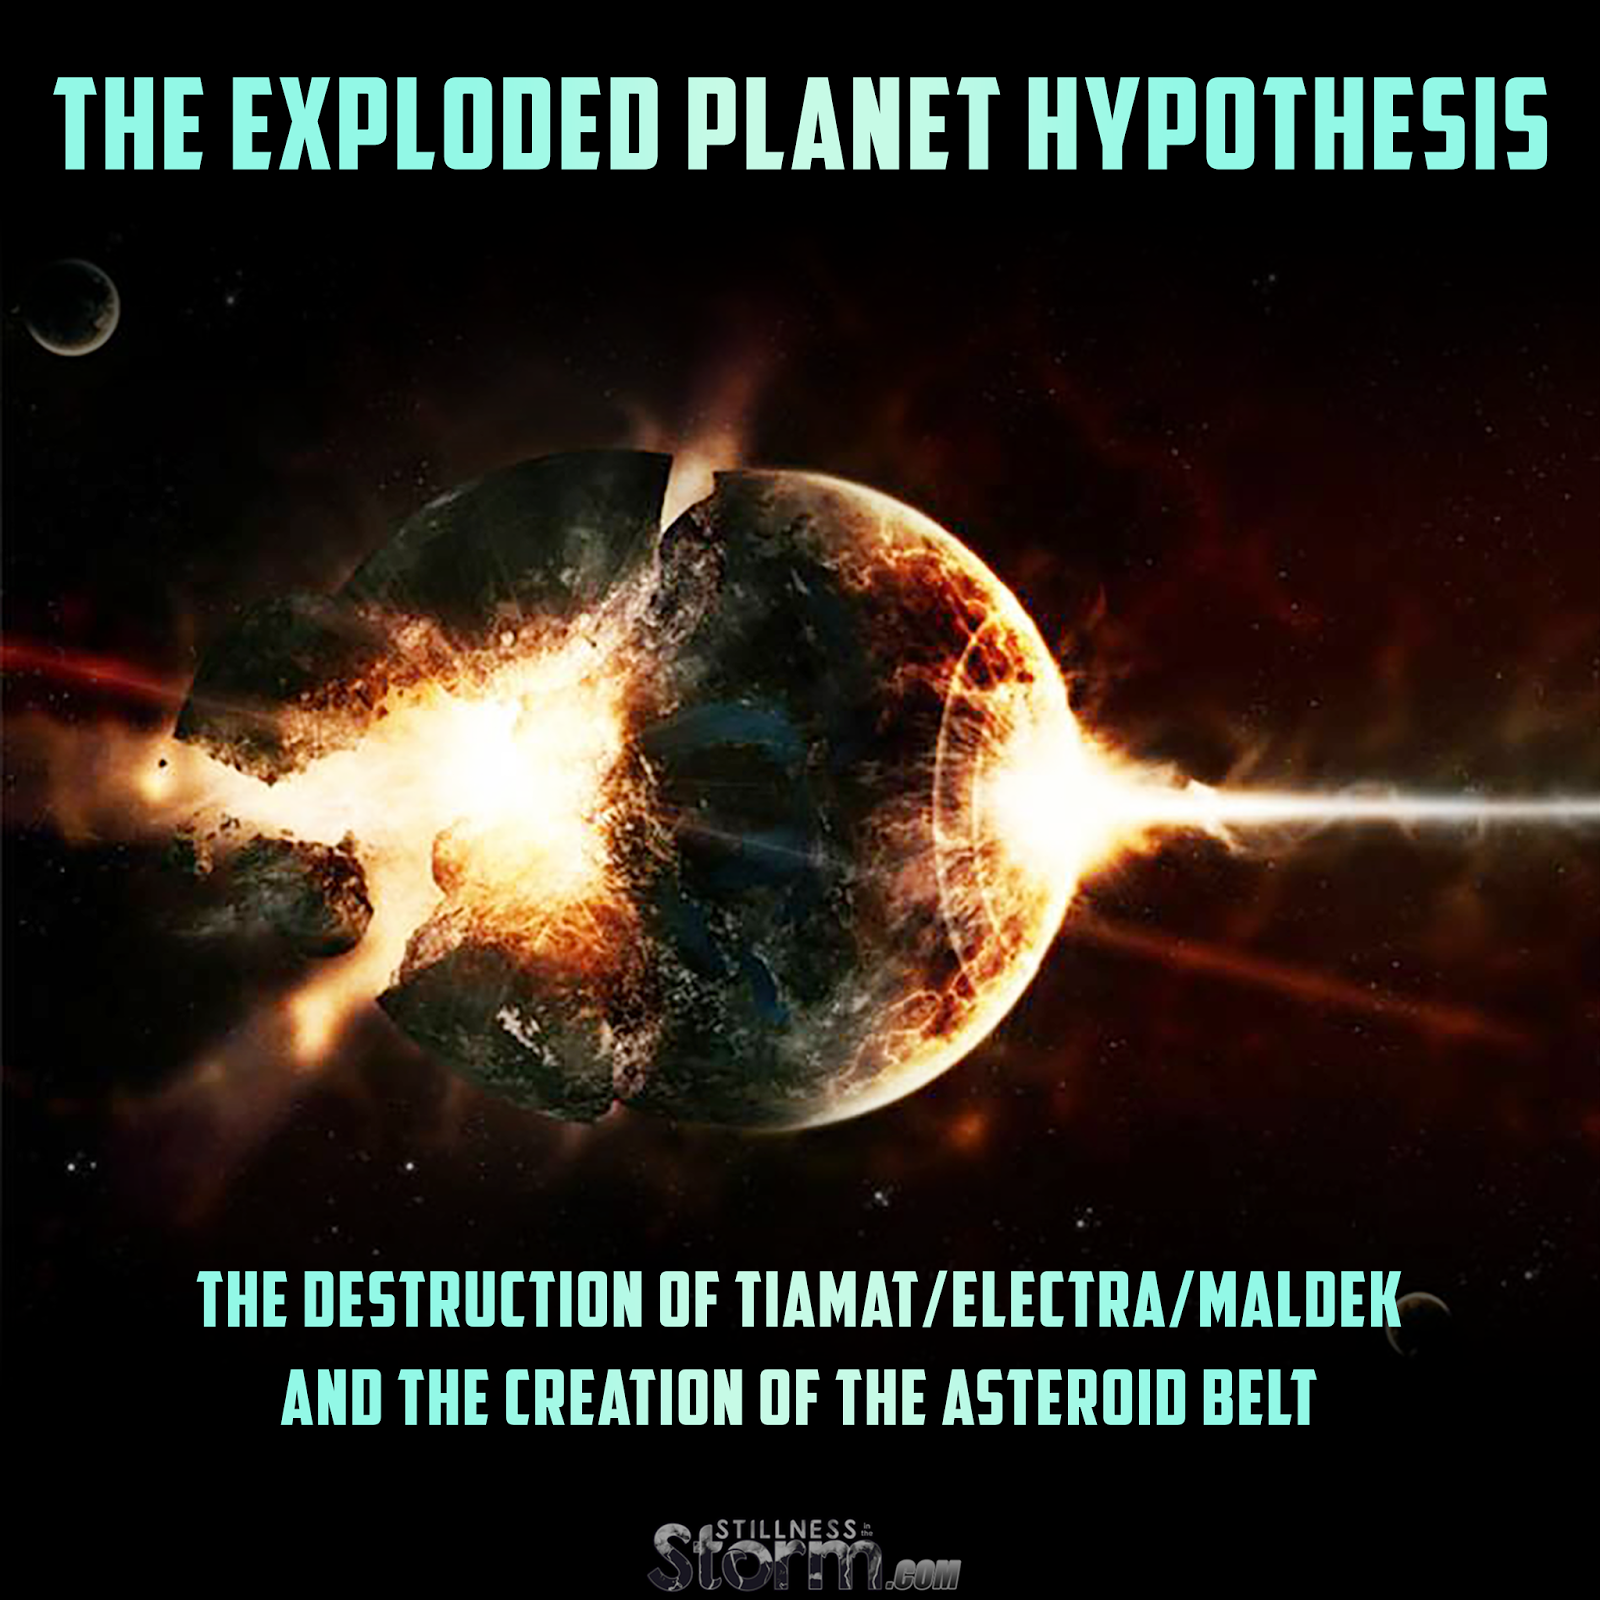 The Exploded Planet Hypothesis The Destruction of Tiamat Electra Maldek and the Creation of the Asteroid Belt